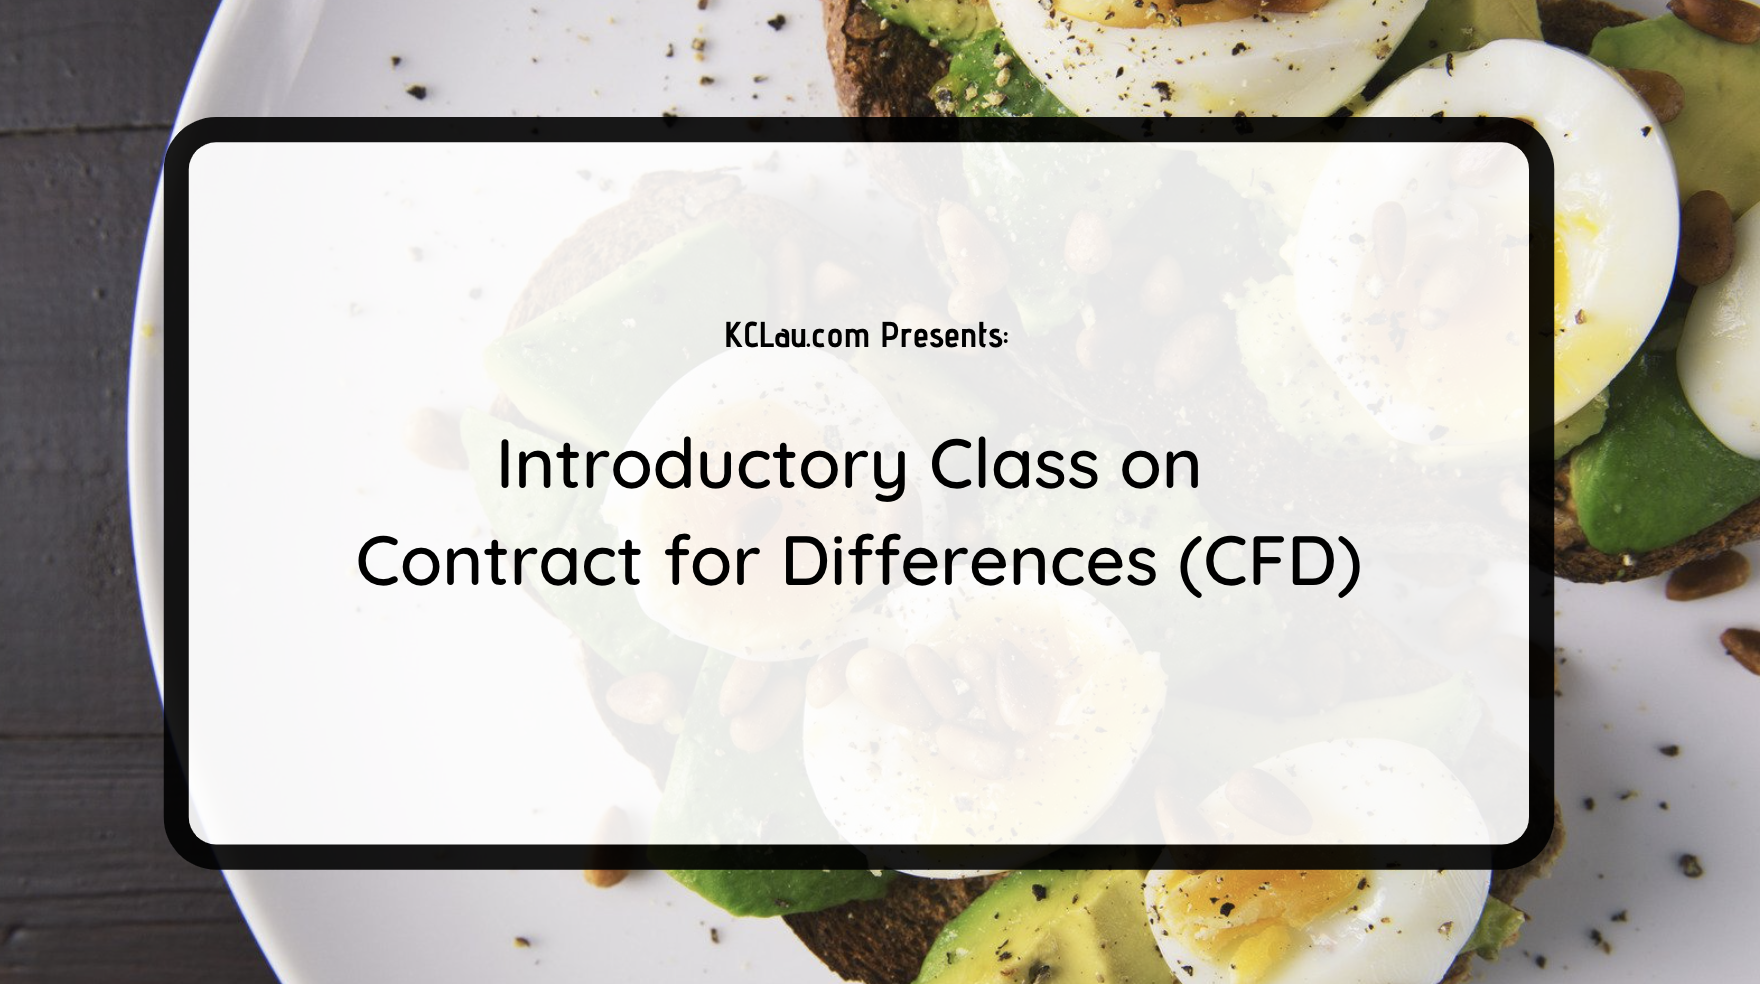 Introductory Class on Contract for Differences (CFD)